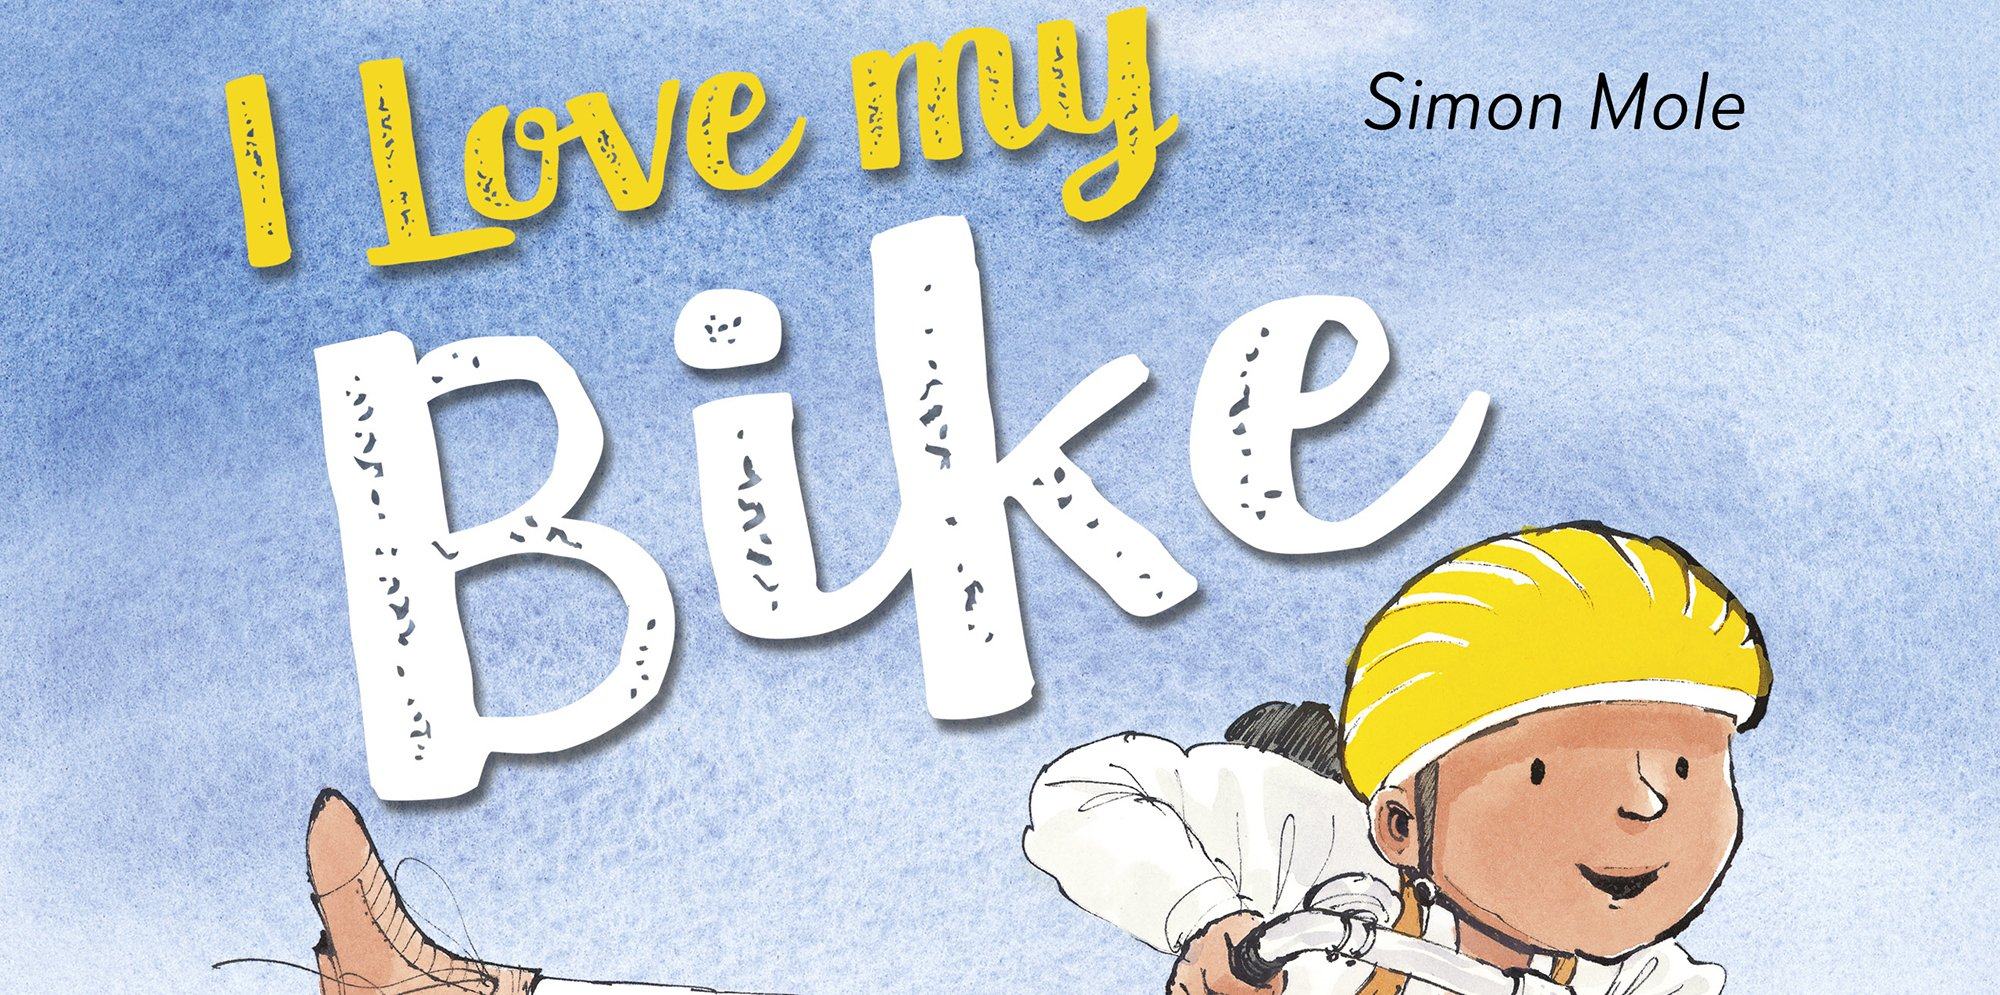 The book cover for Simon Mole's I Love my Bike, there's an illustration of a child riding a bike